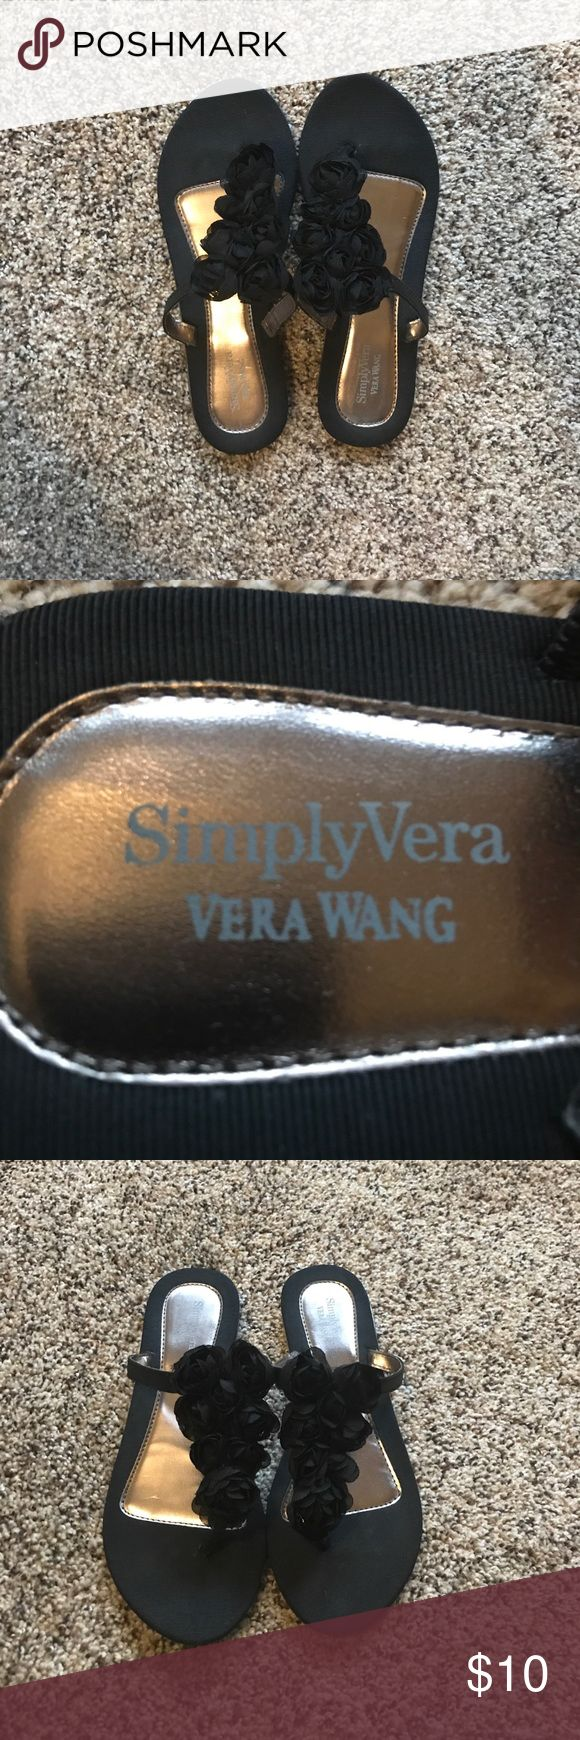 SimplyVera by Vera Wang flip flops Vera Wang dressy flip flops with flowers. Brand new, never been worn. Simply Vera Vera Wang Shoes Sandals